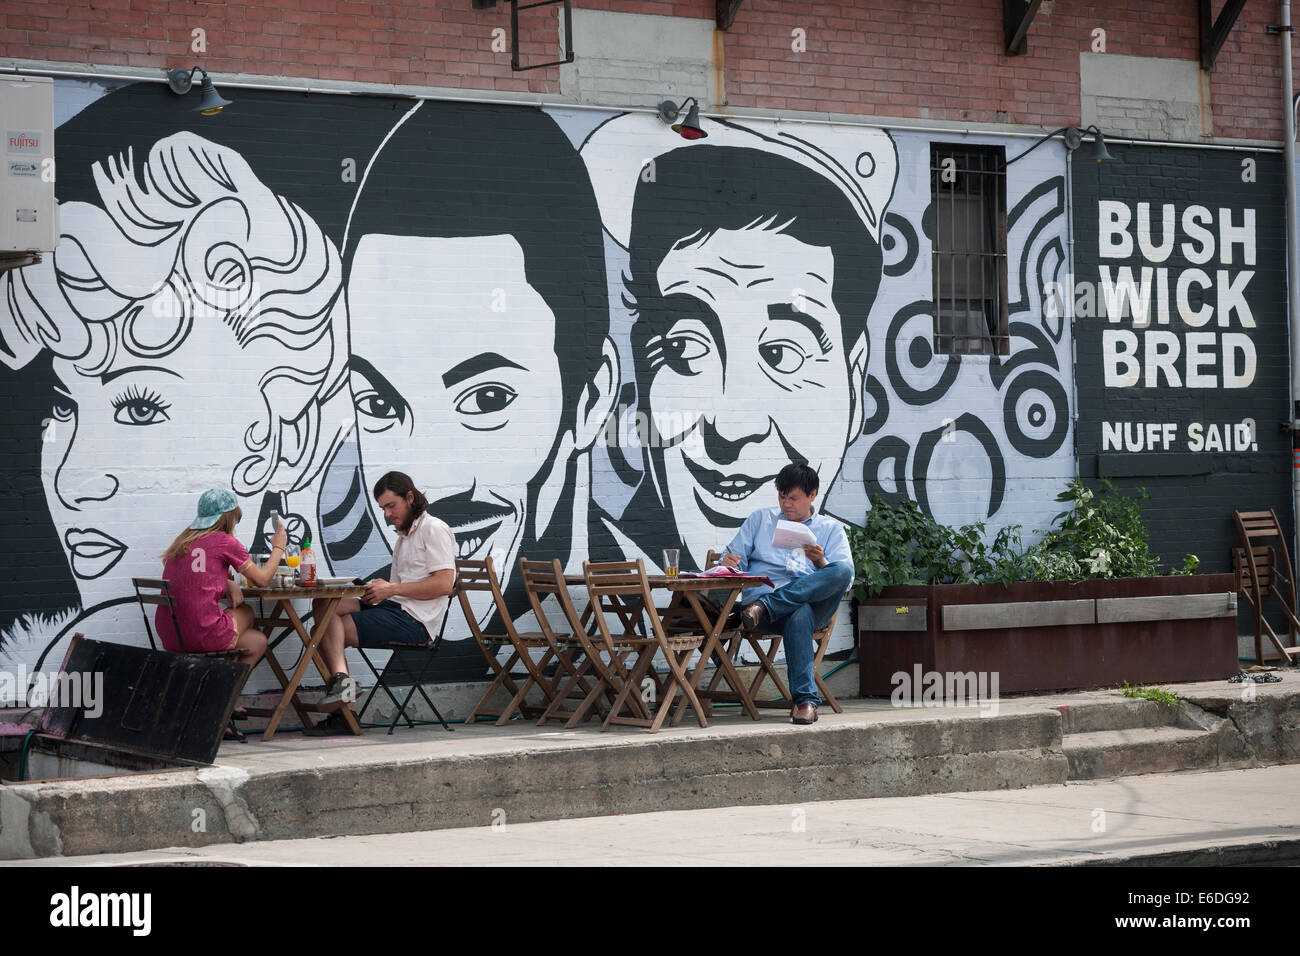 Diners at an outdoor cafe in the bushwick neighborhood of brooklyn in new york stock